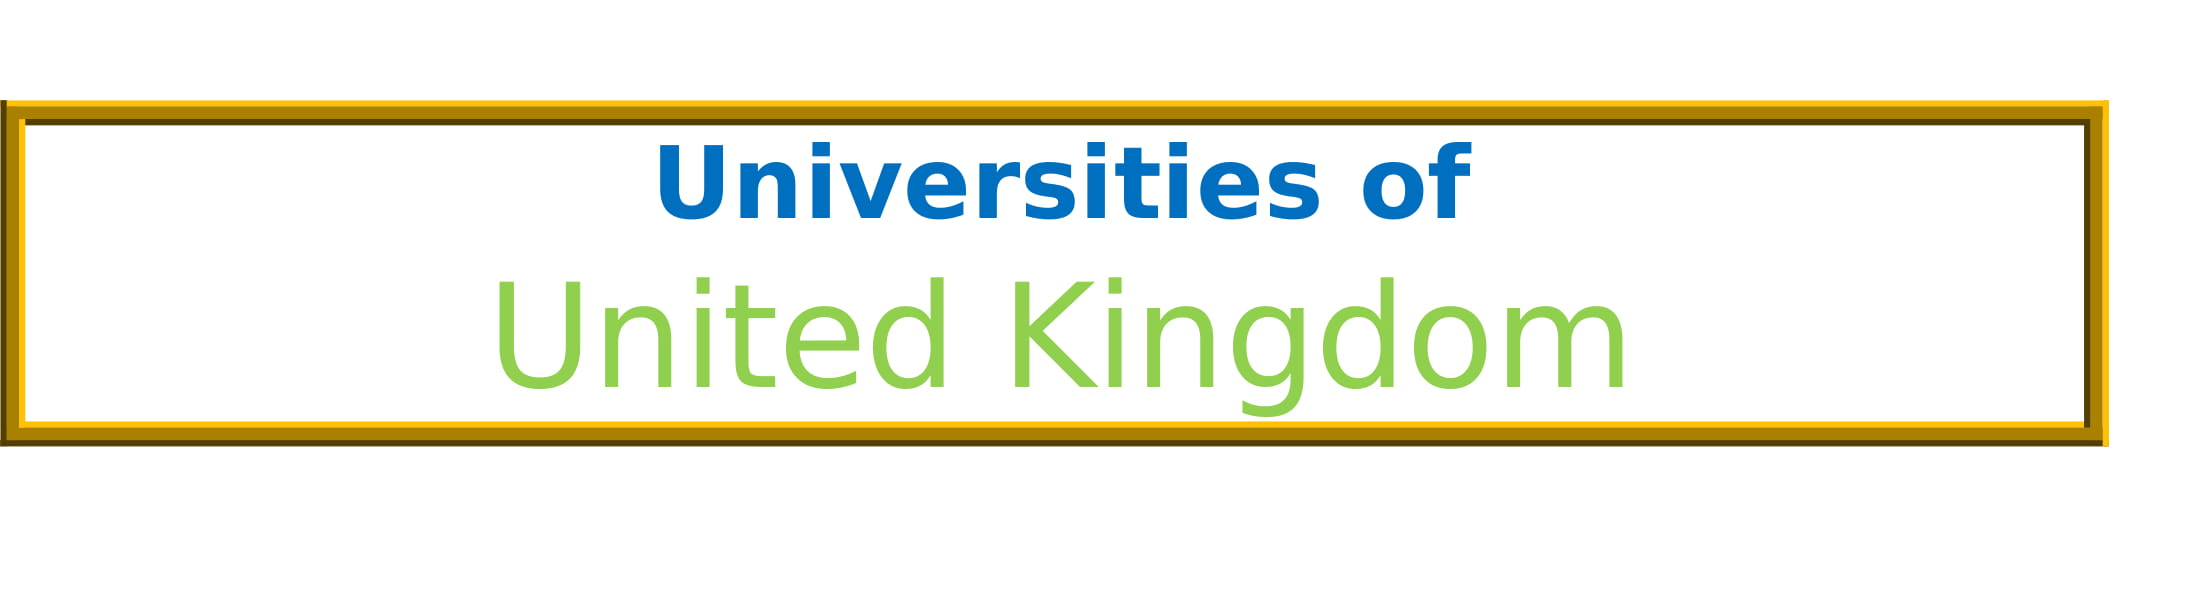 List of Universities in United Kingdom